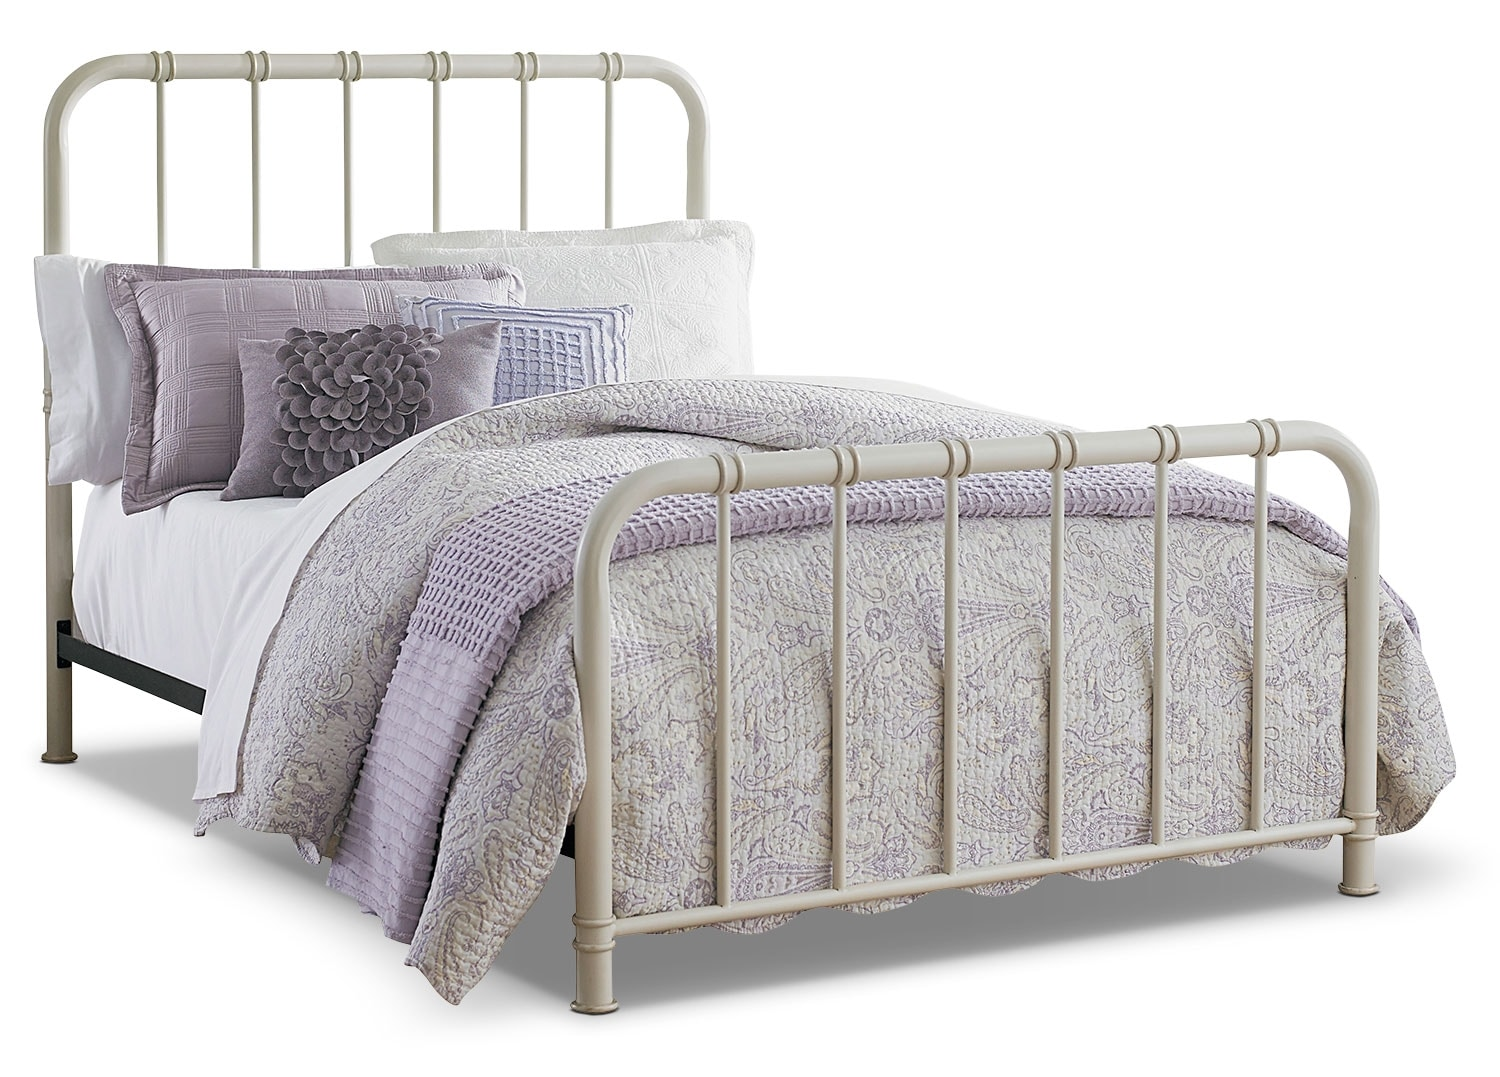 Kids Furniture - Tristan Twin Metal Bed - Antique White